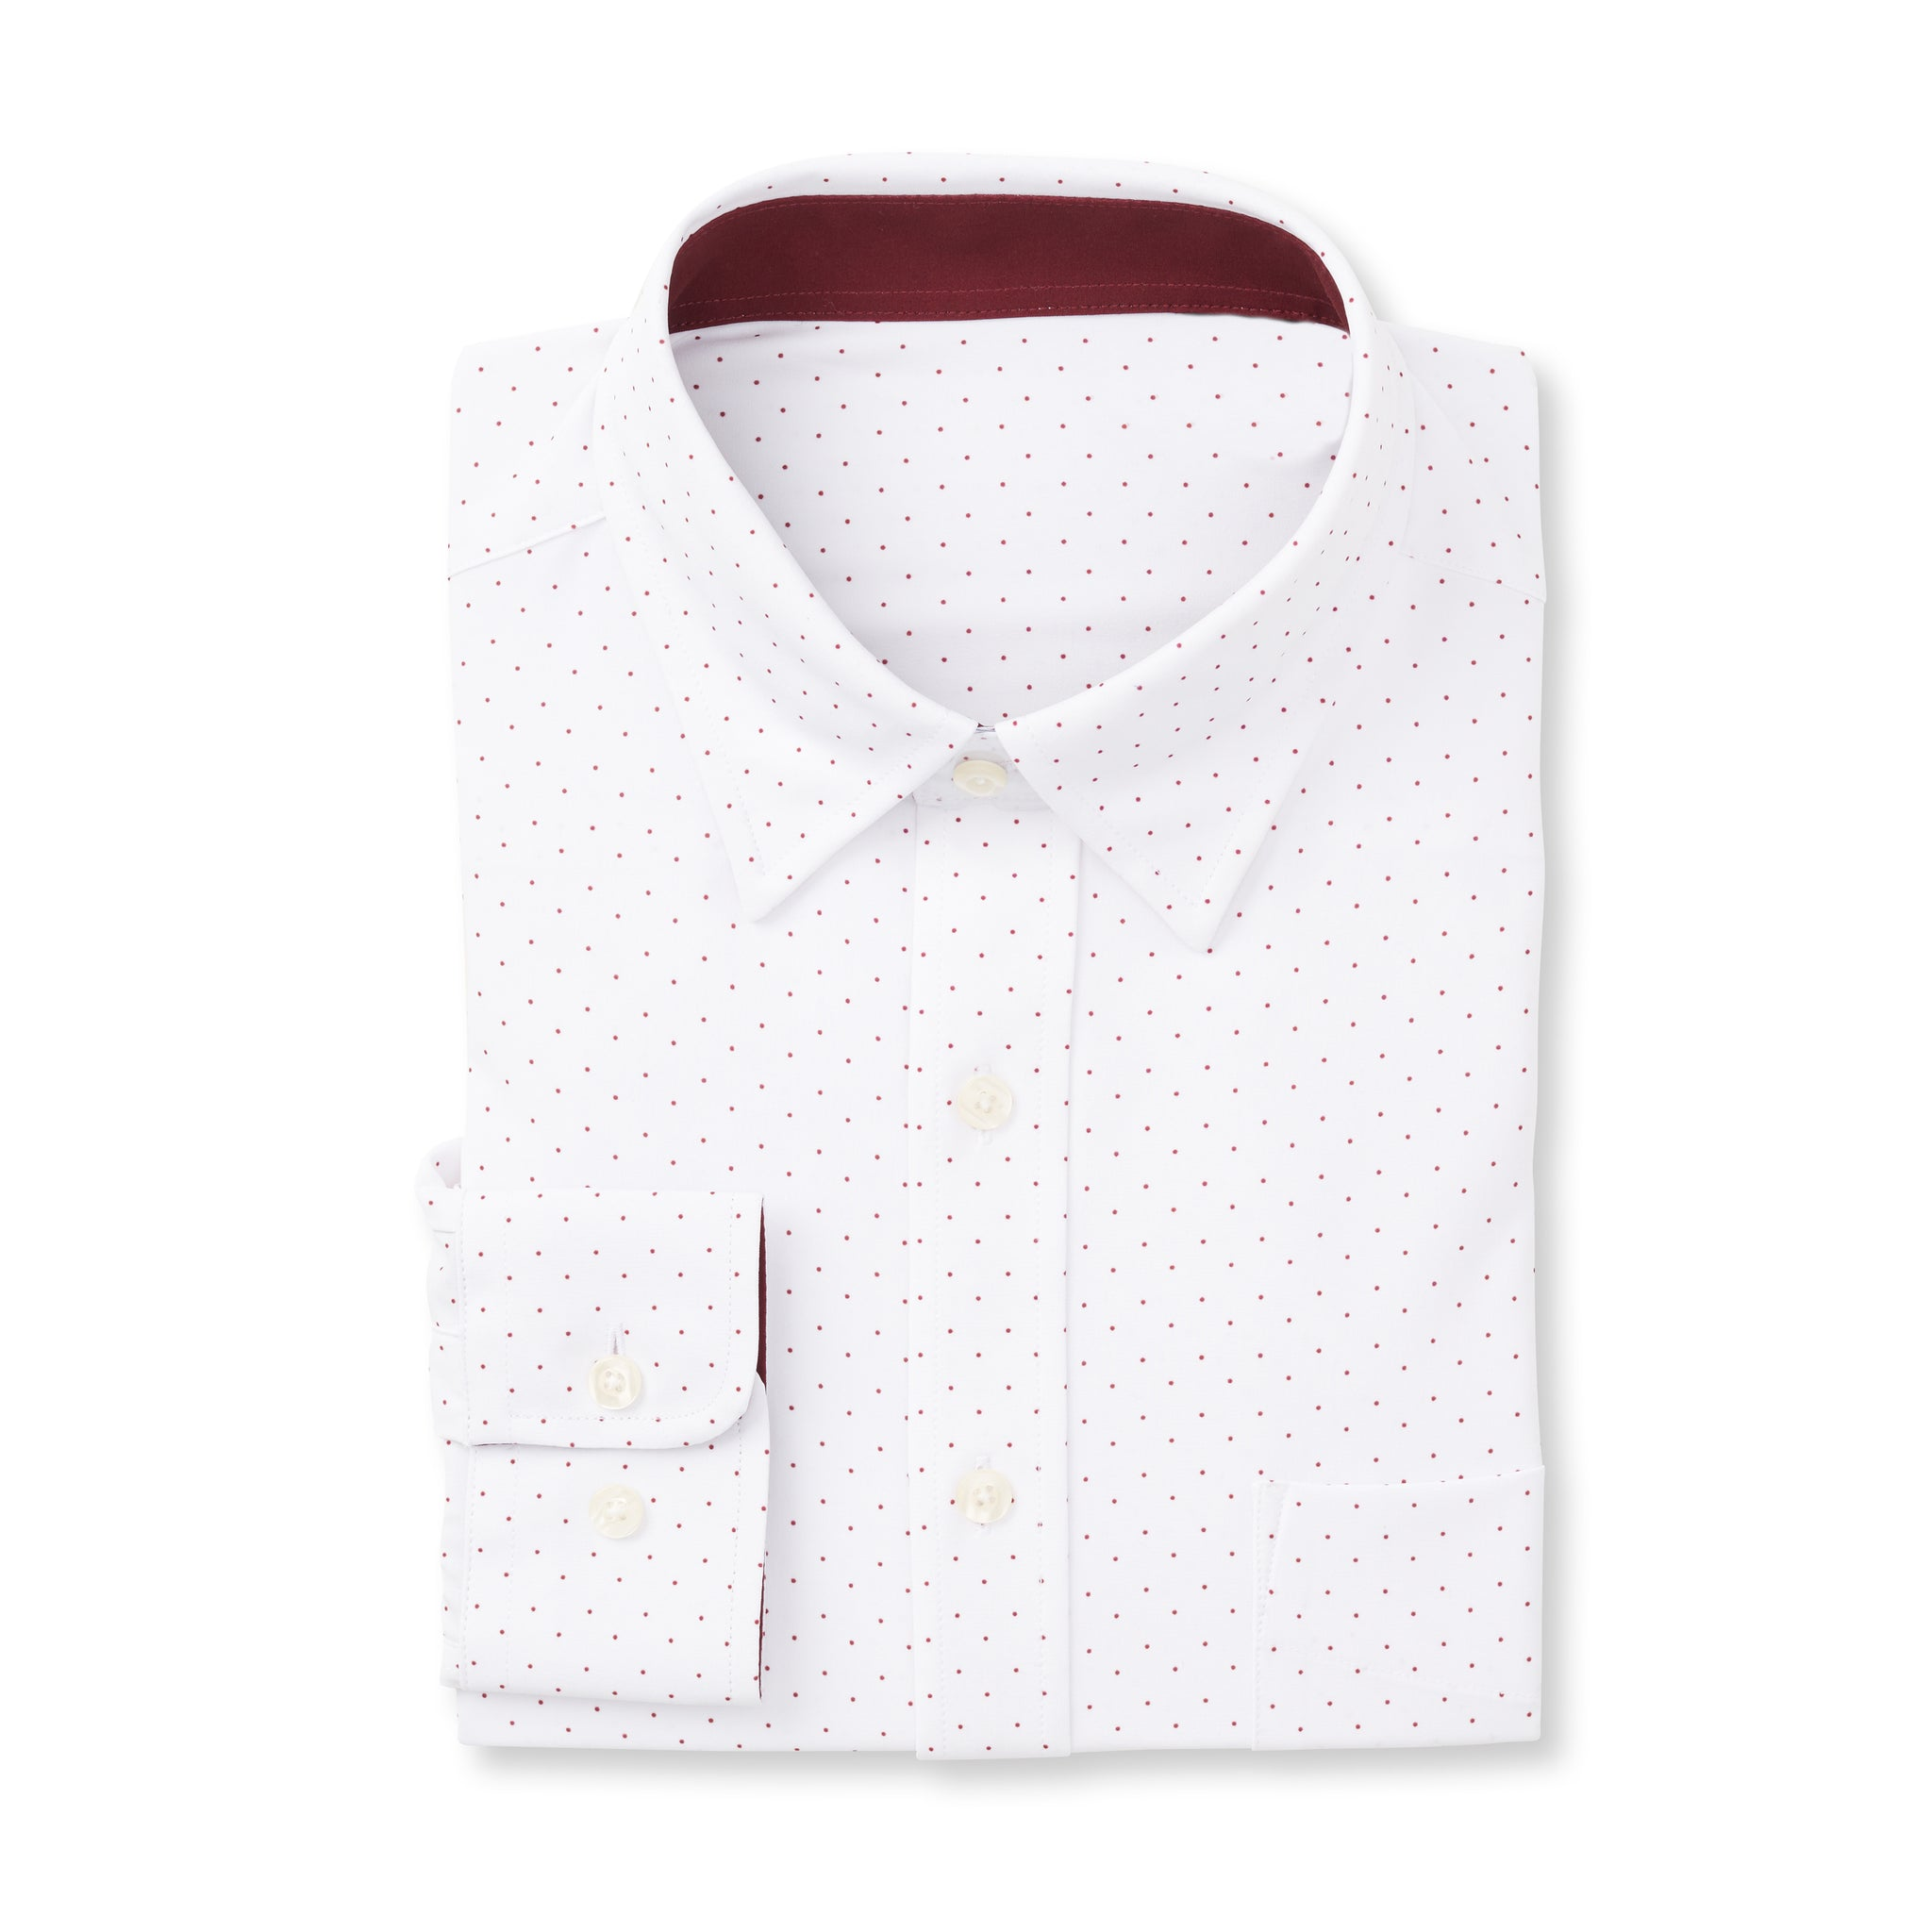 THE BOSS LECKER DOT SPORT SHIRT - IS92311 White/Merlot